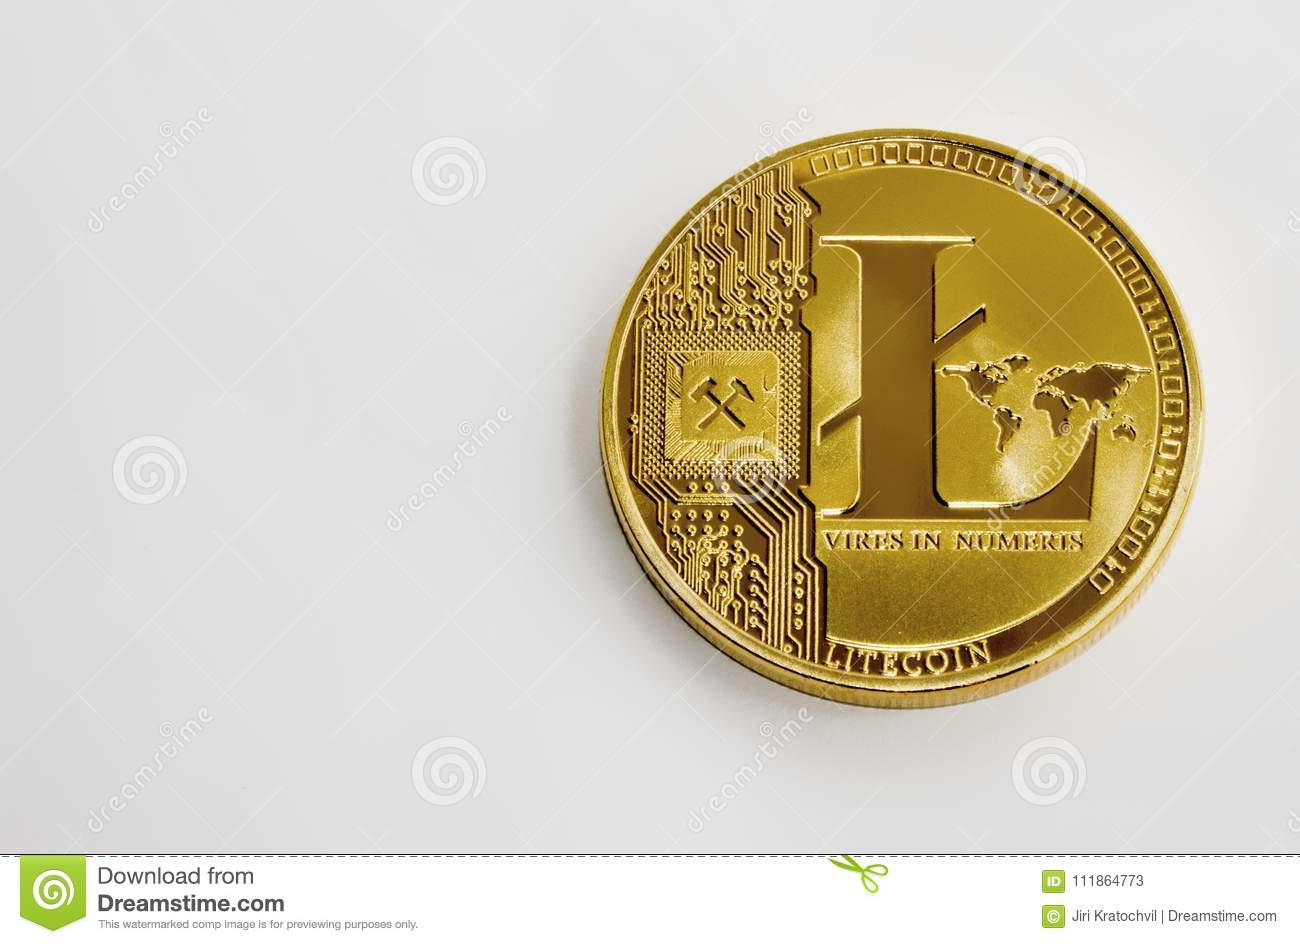 Gold Coin On A White Background Litecoin Stock Image - Image